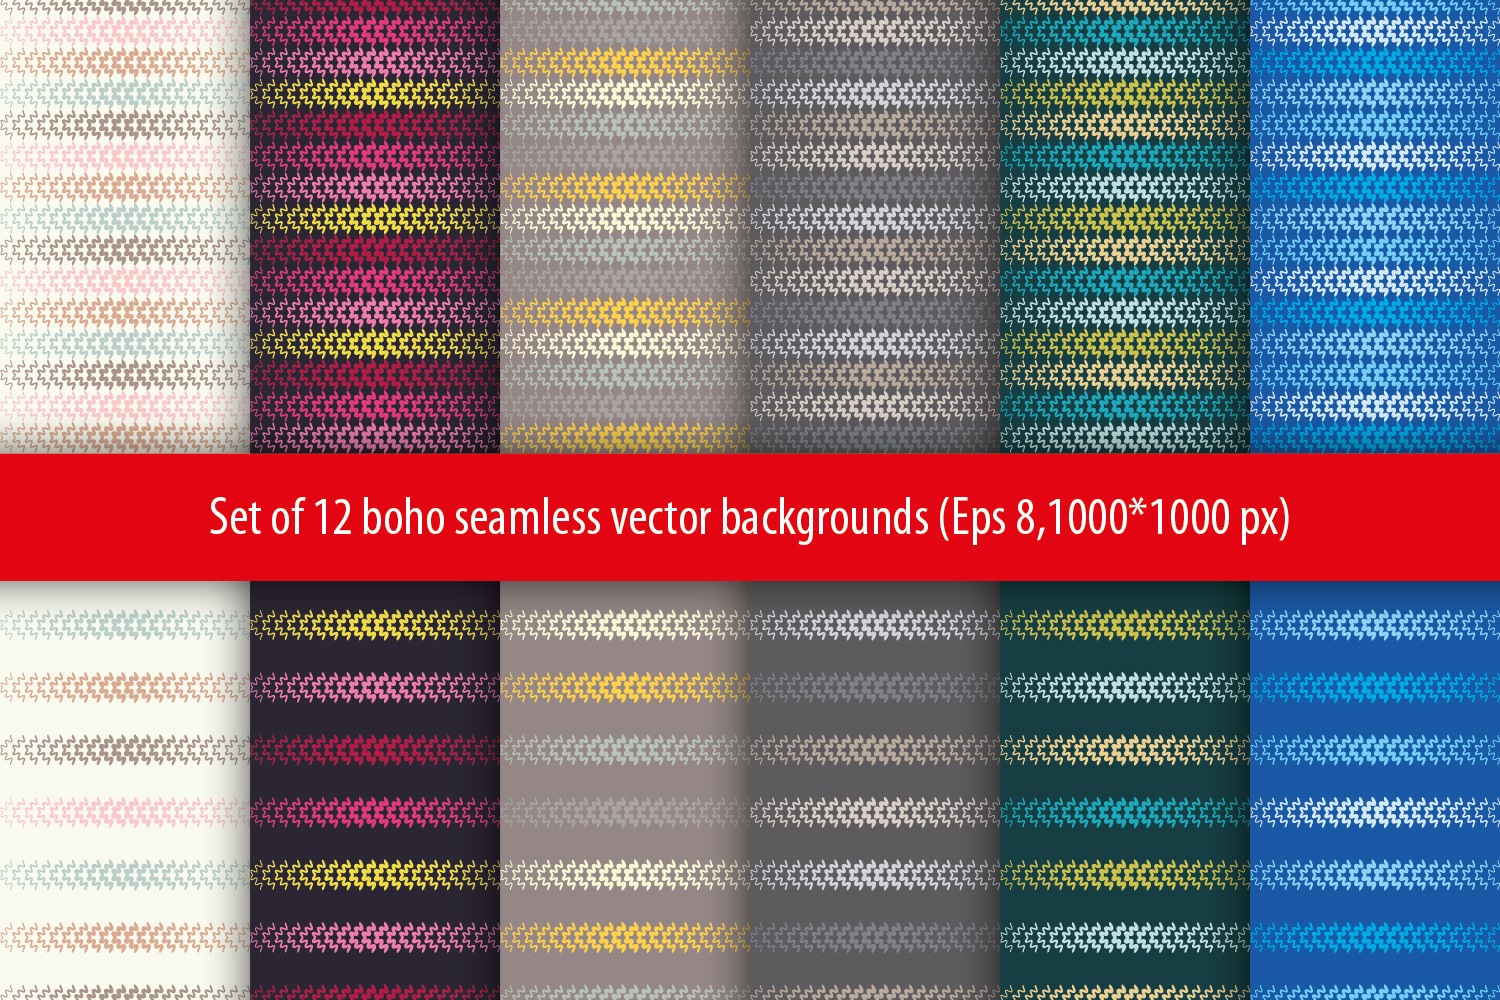 Set of 12 boho seamless vector backgrounds. example image 2